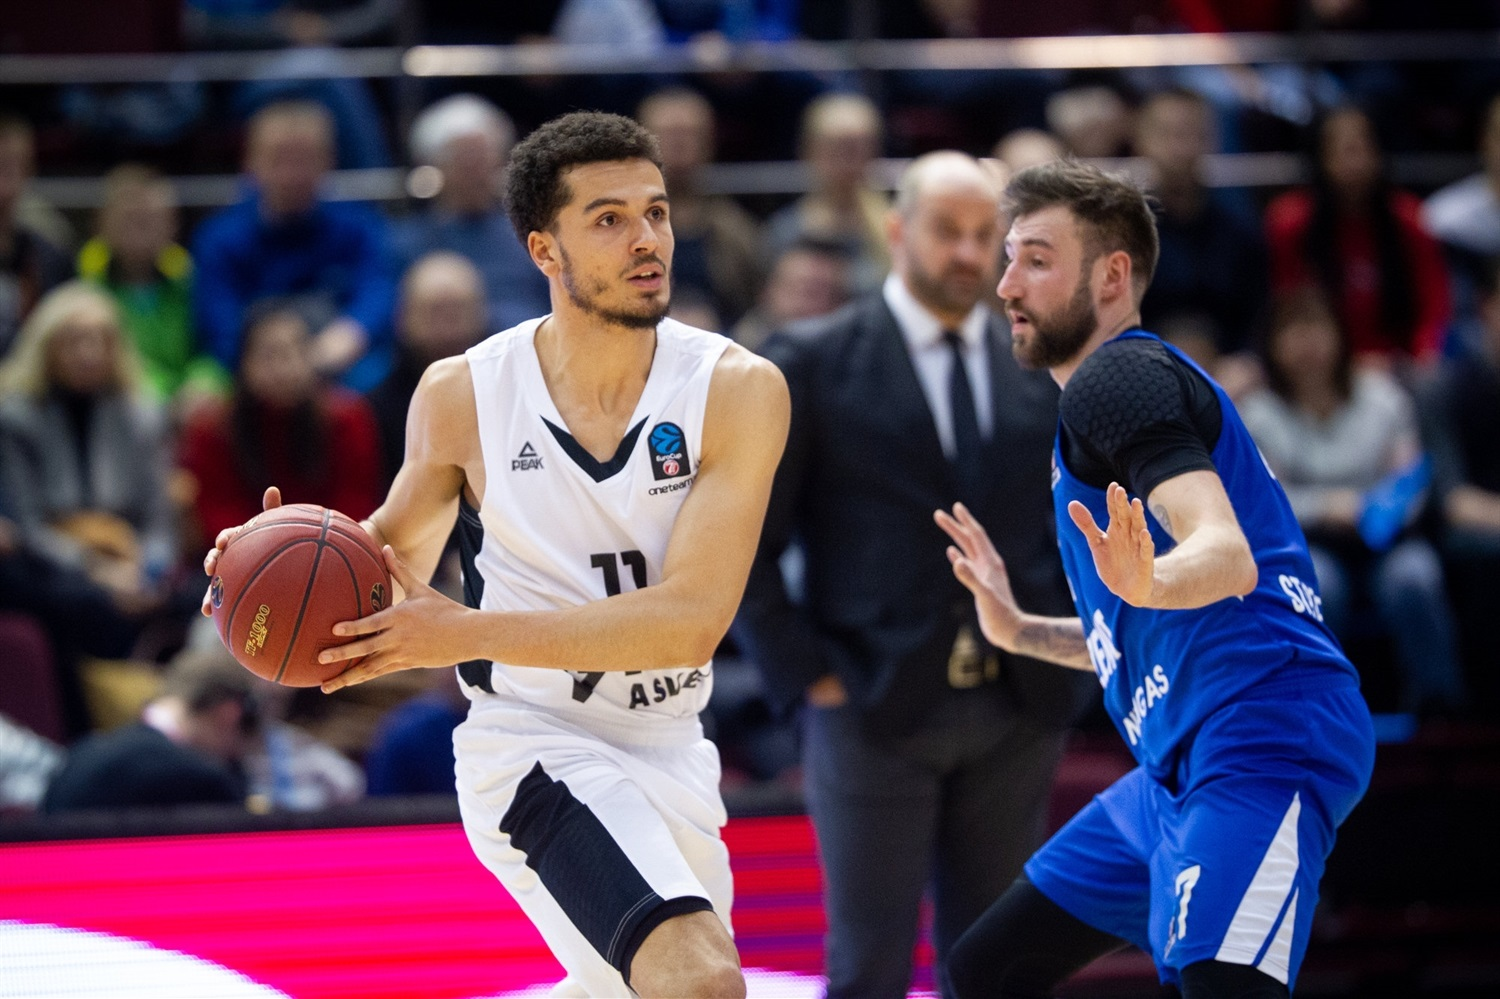 Charles Galliou - LDLC ASVEL Villeurbanne (photo Zenit) - EC18